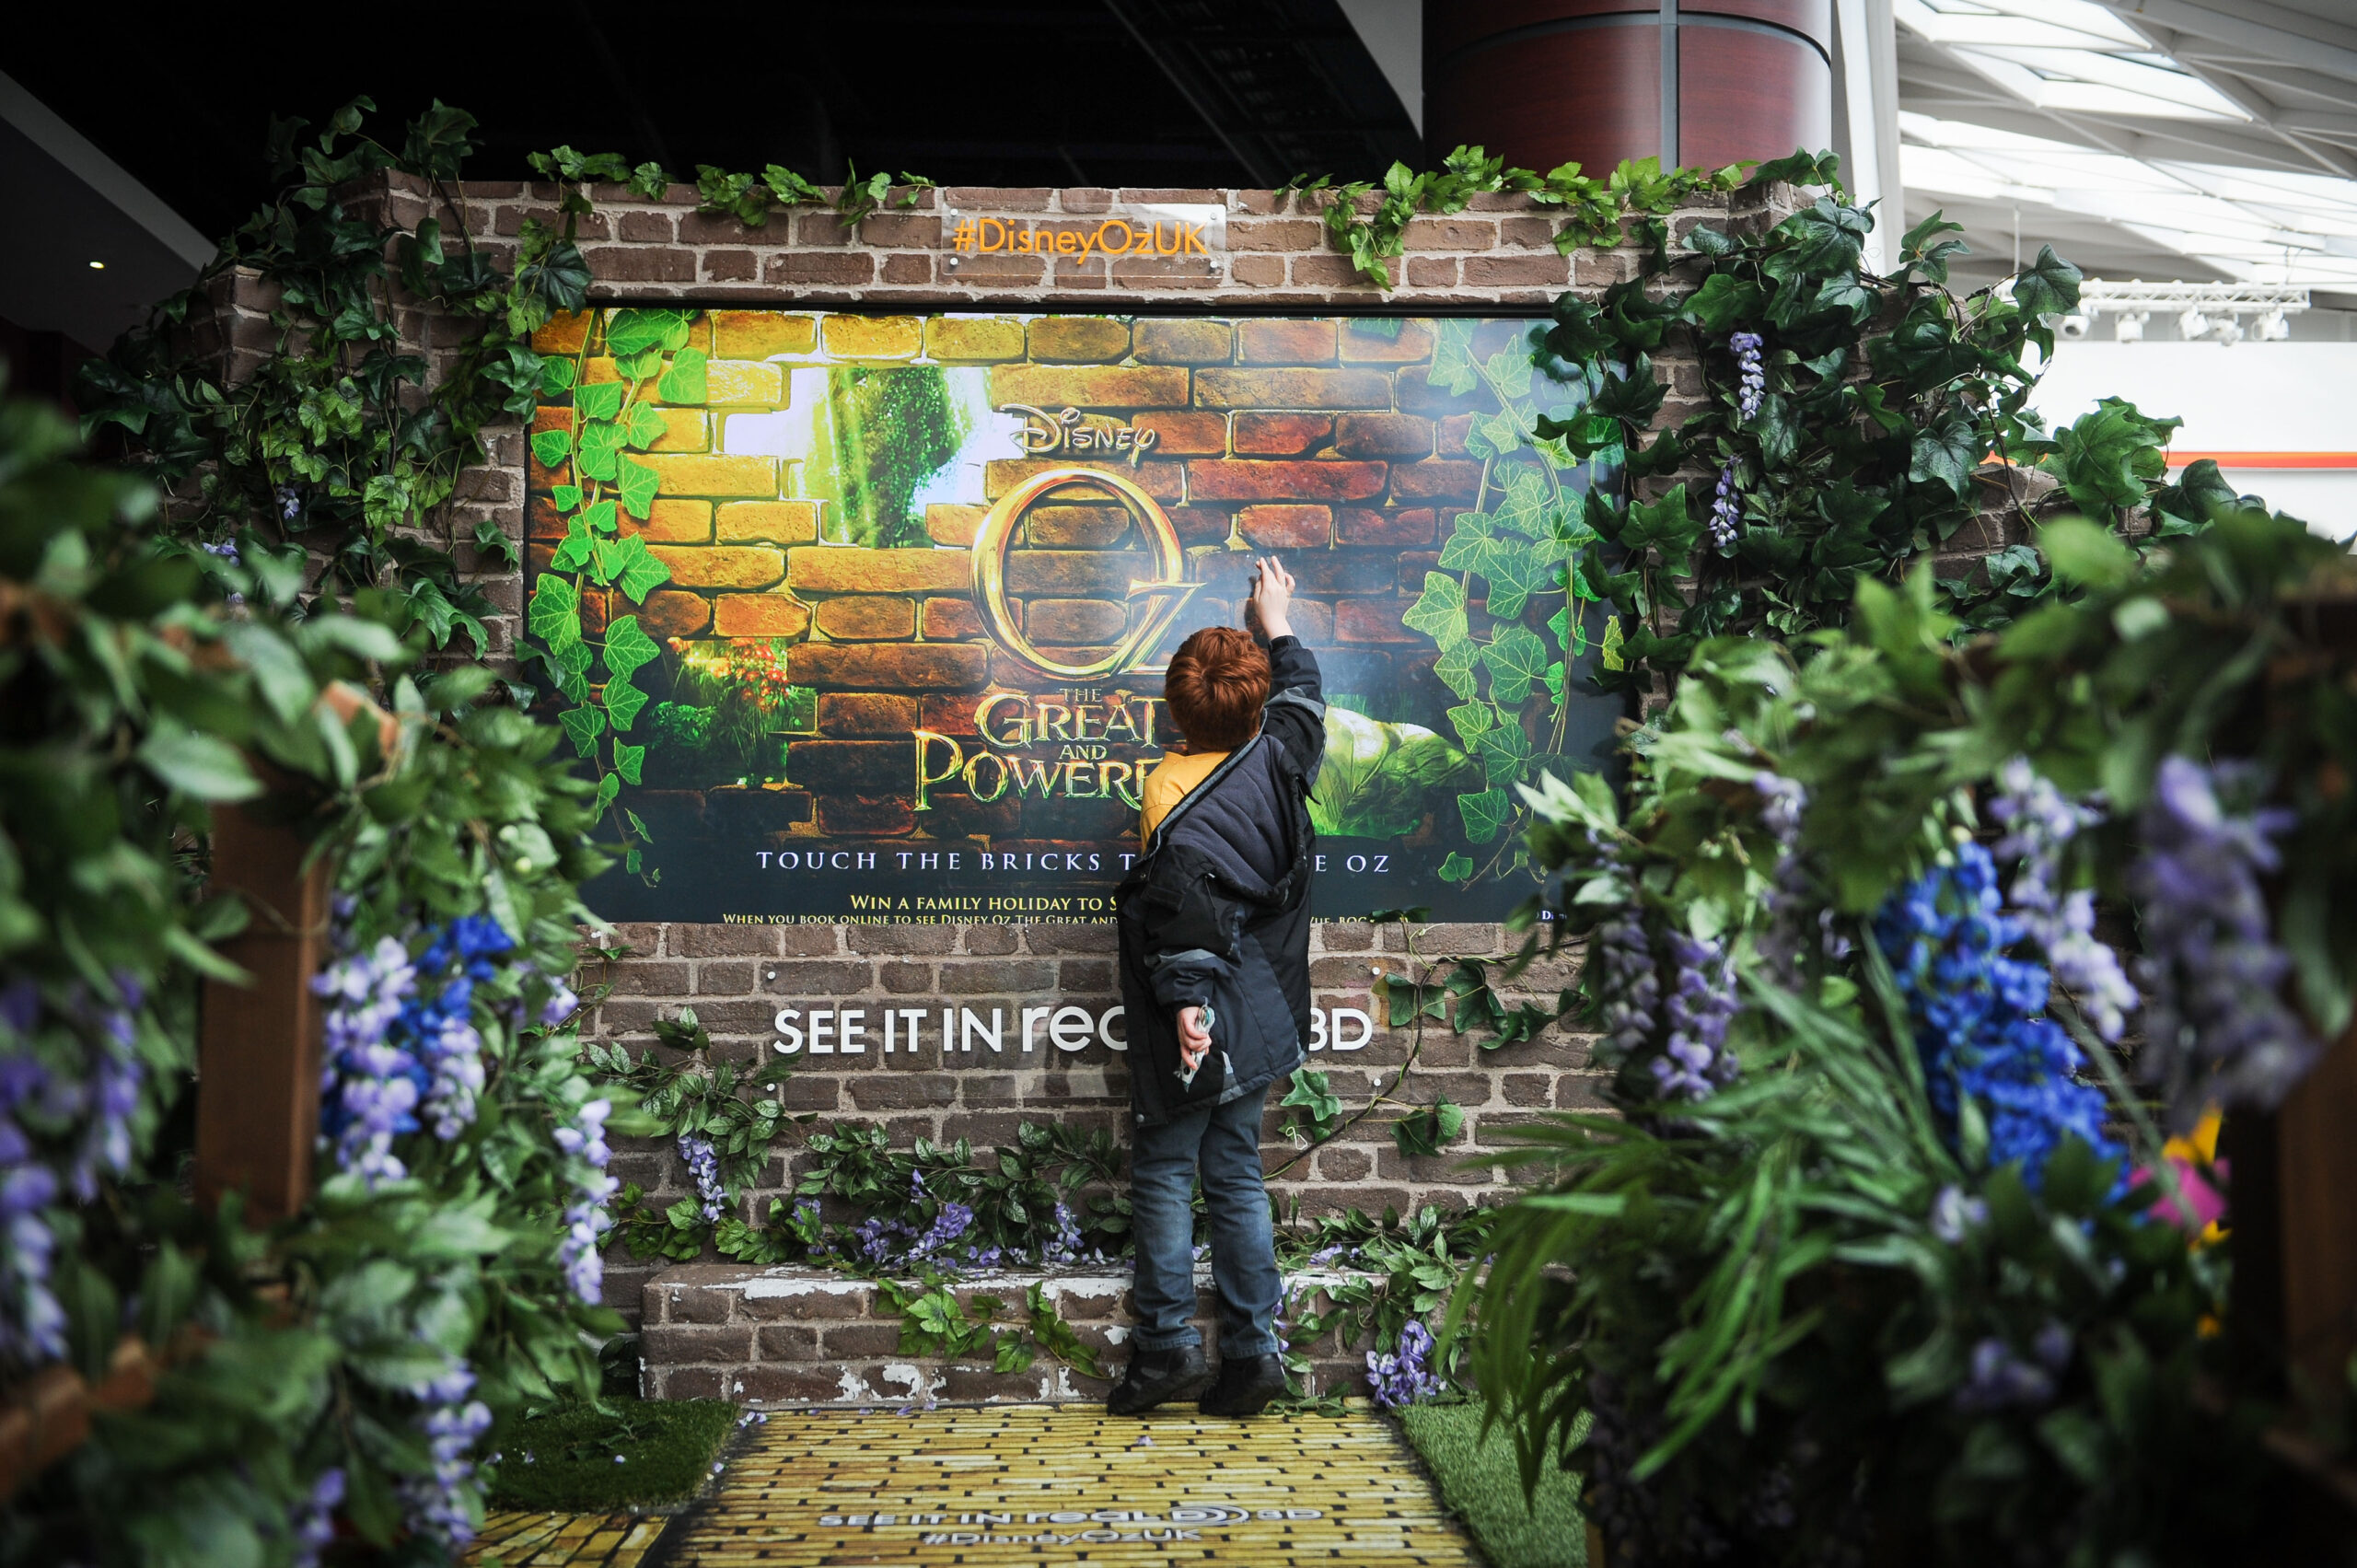 """Vue Entertainment has brought """"Oz World"""" to Vue Westfileld to promote new release, """"Oz The Great and Powerful"""". This  involves the construction of a large yellow brick road running along the balcony in Westfield shopping centre with a bridge, leading to an interactive digital screen. On Saturday there was a magician and assistant in Oz character dress (Victorian costumes) running 'Covent Garden' style magical theatre acts through the day in the foyer area. Pictured are some movie-goers enjoying the entertainment on show.  PICTURES BY DANIEL LEWIS +44(0)7813 987475"""